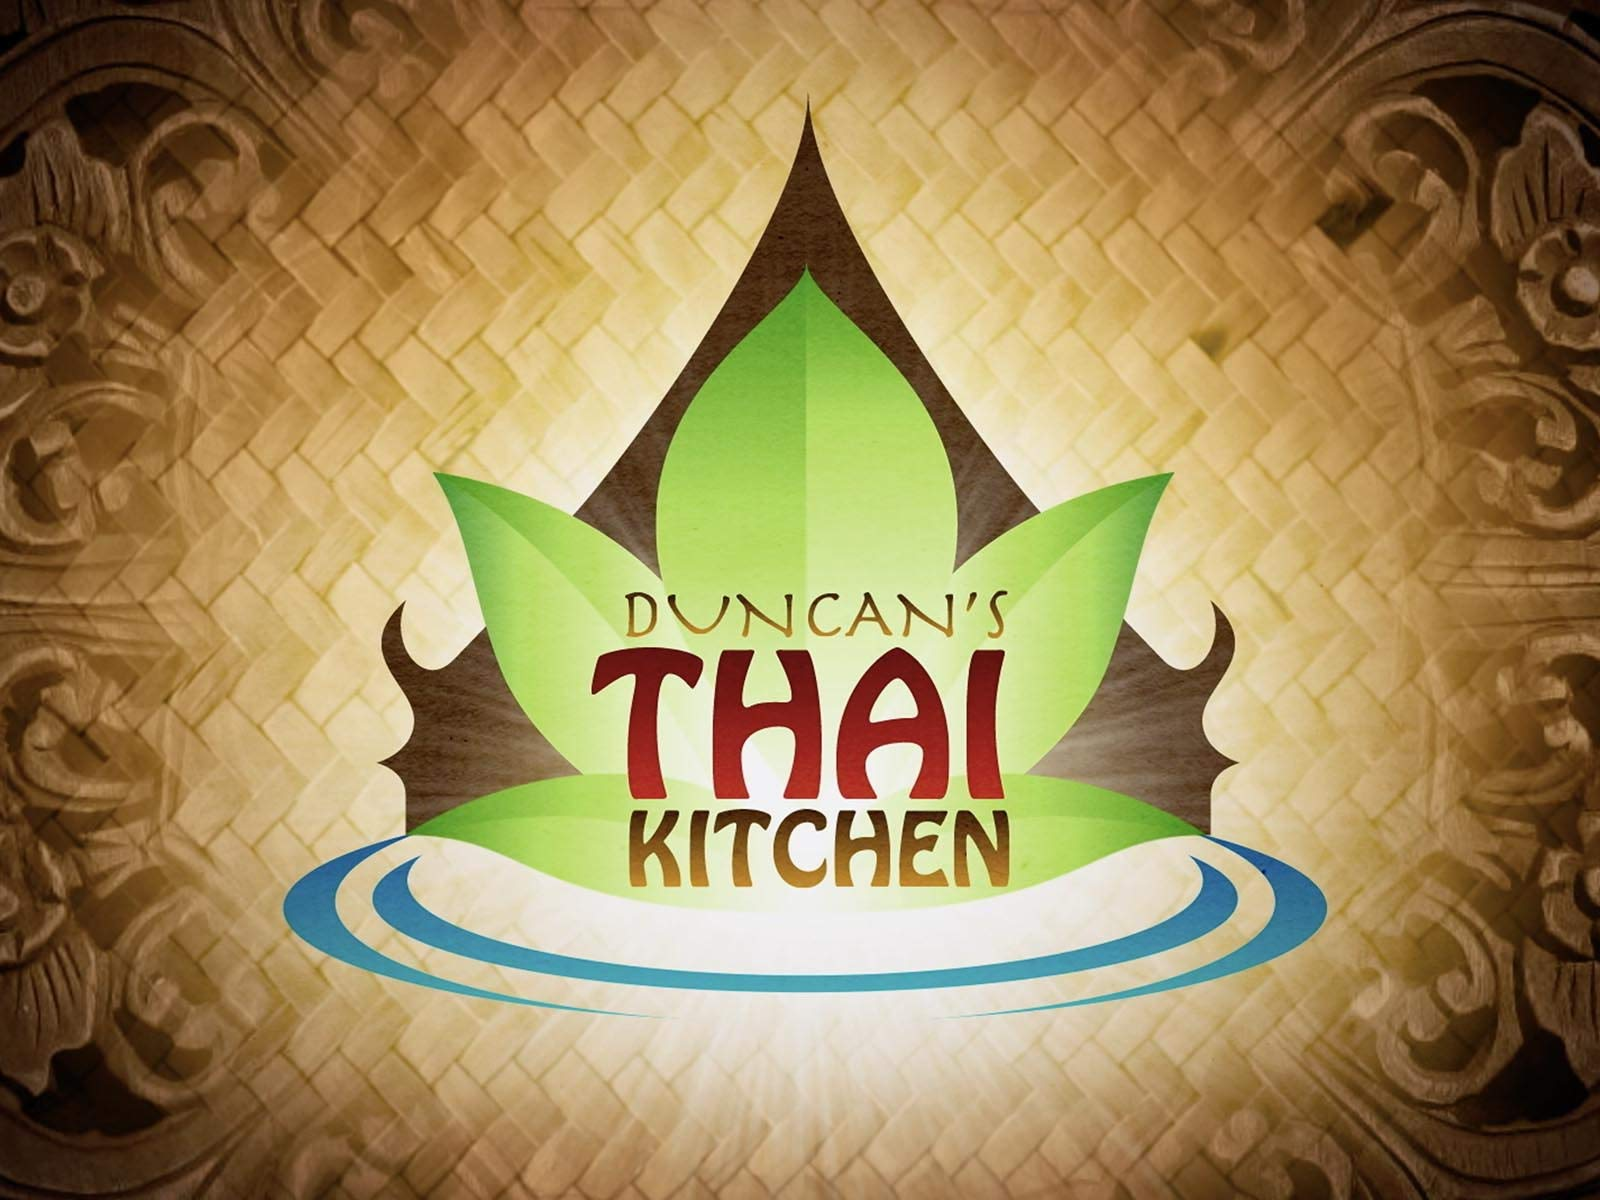 Duncan's Thai Kitchen - Season 1